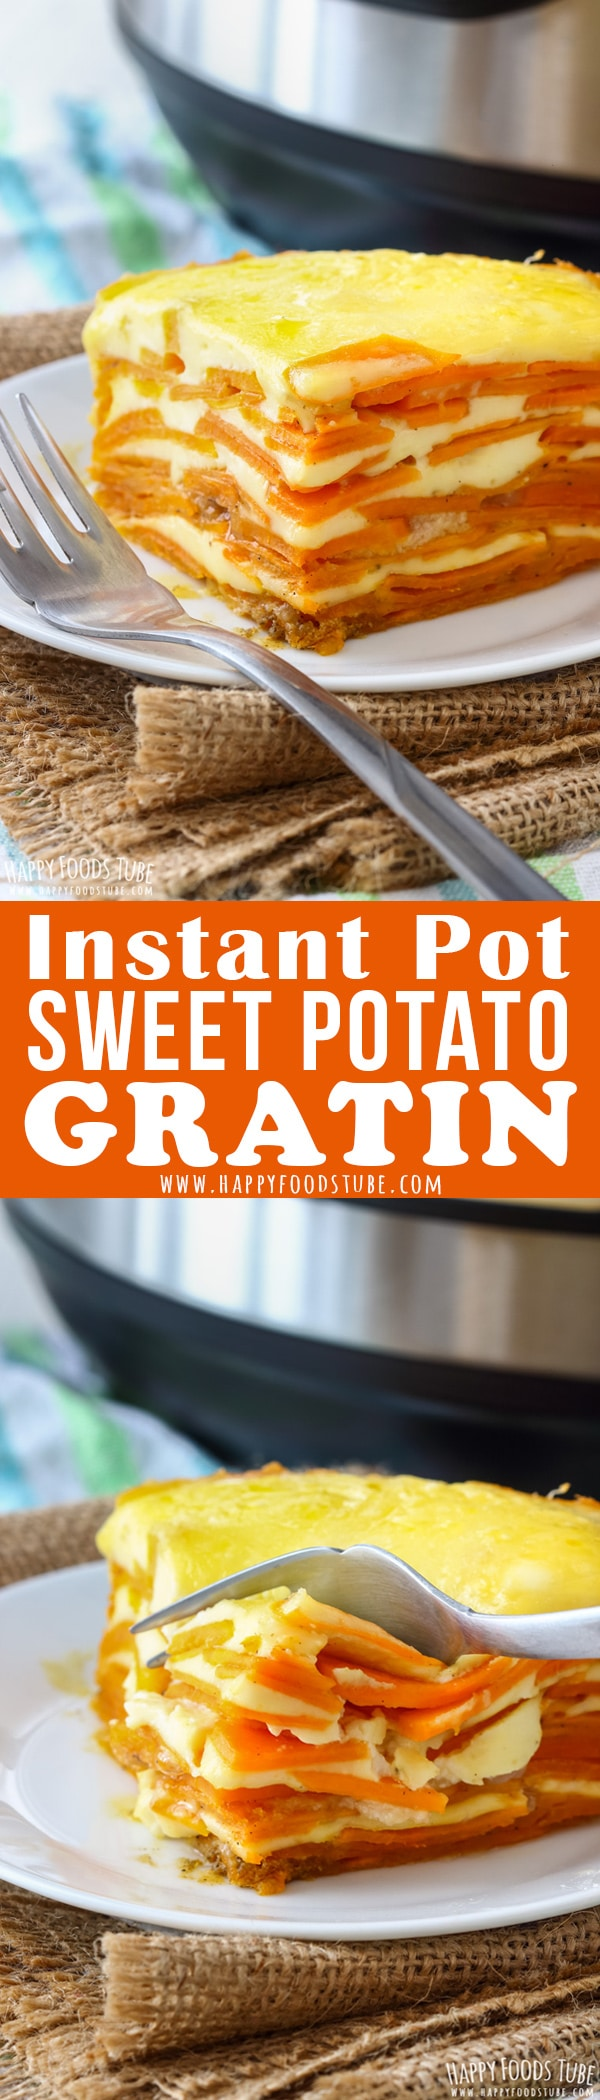 Instant Pot sweet potato gratin is quicker than its oven-baked version but tastes equally delicious. Sweet potatoes, rich sauce are layered & topped with cheese. #sweetpotato #potatogratin #instantpot #pressurecooker #frenchfood #frenchcuisine #vegetarian #recipes #meal #sidedish #makeahead #casserole #weeknightmeals